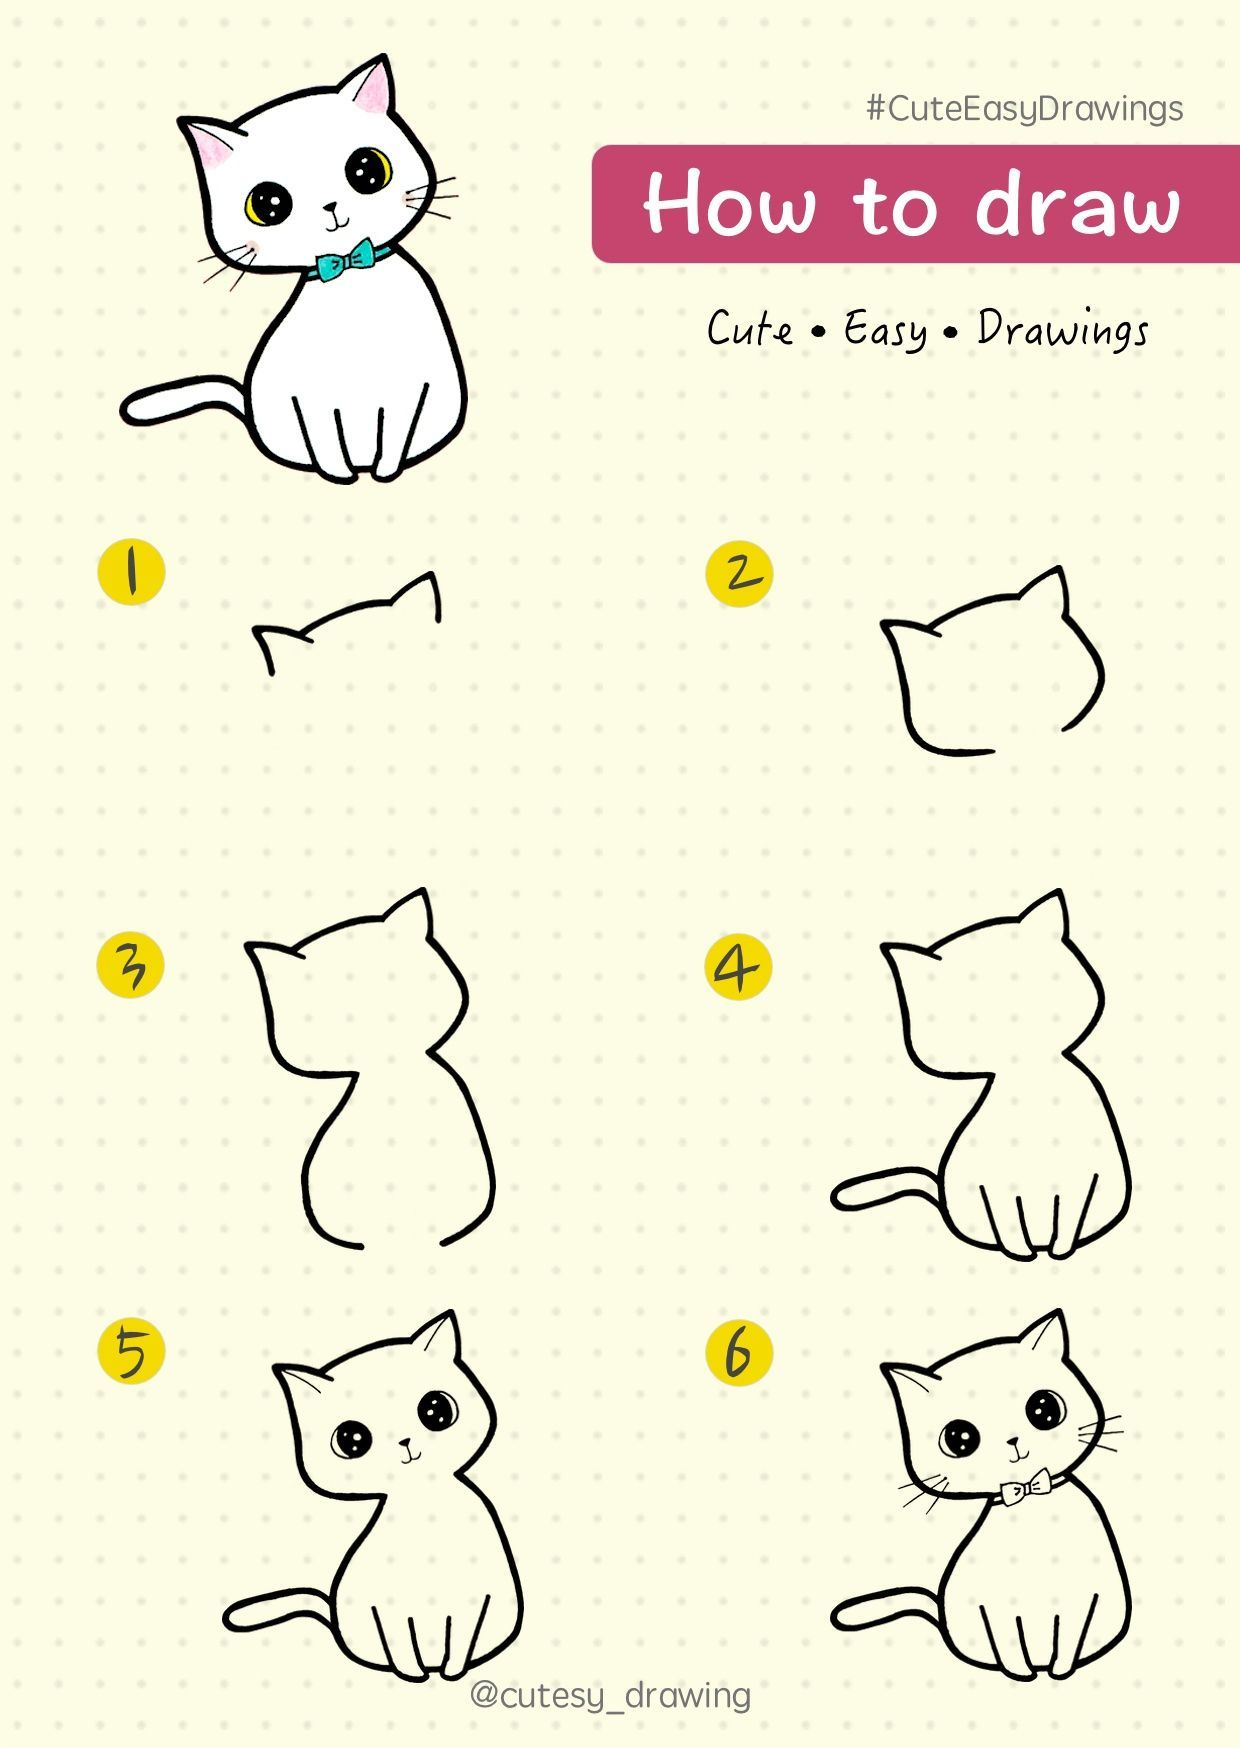 How To Draw Cute Kitten Cat Step By Step Tutorial In 2020